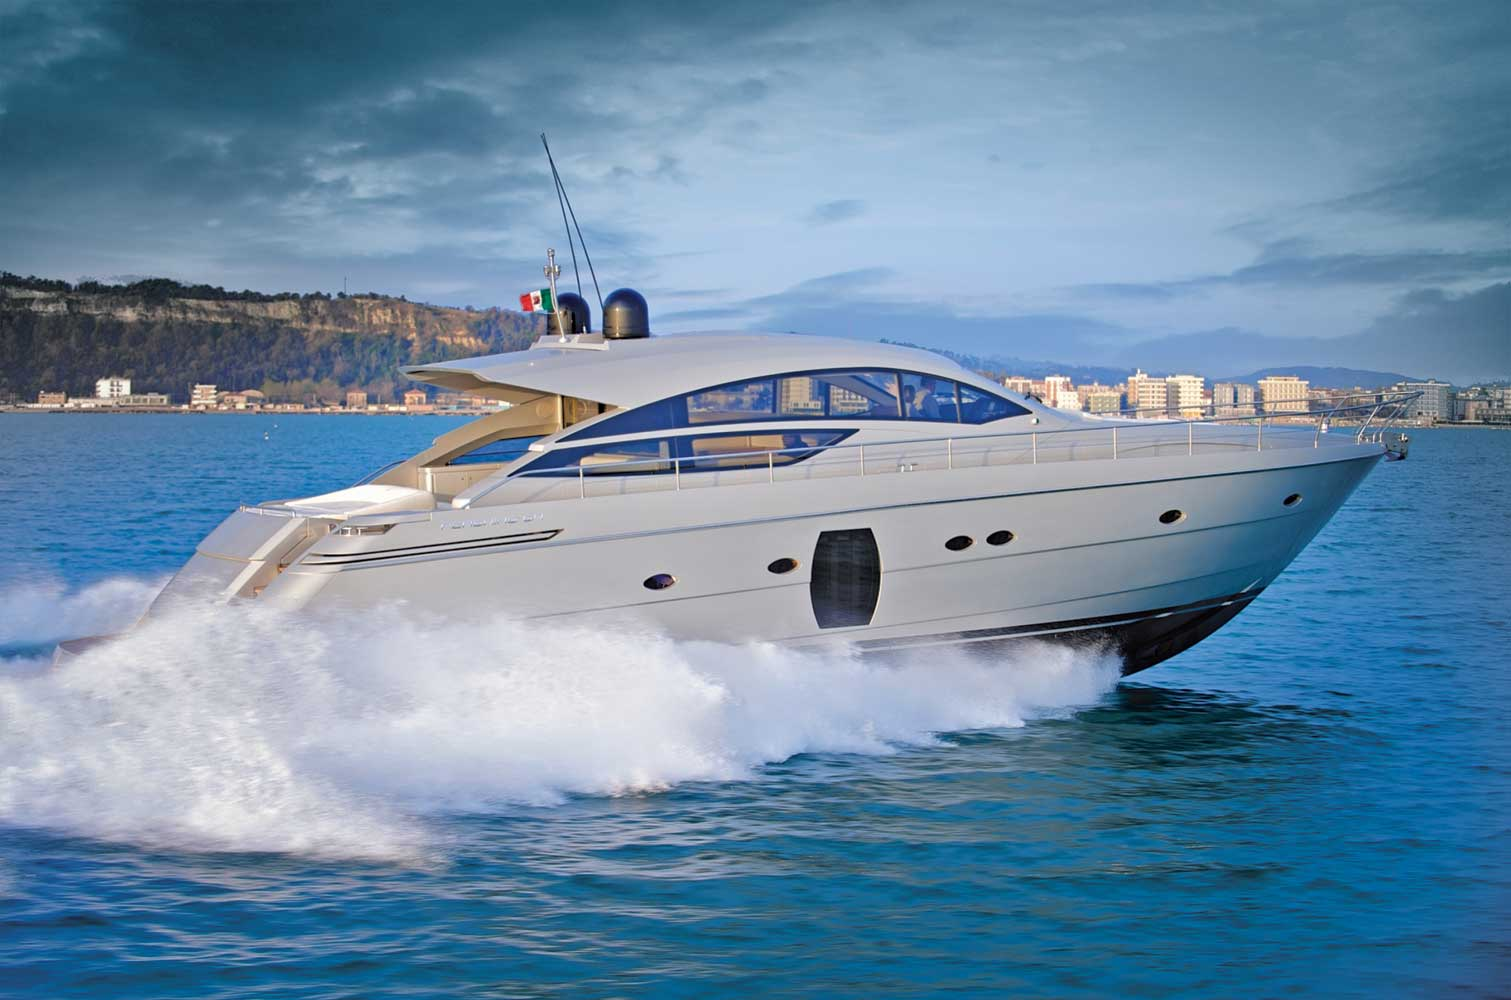 Here is a profile photo of the Pershing 64 motor yacht underway.